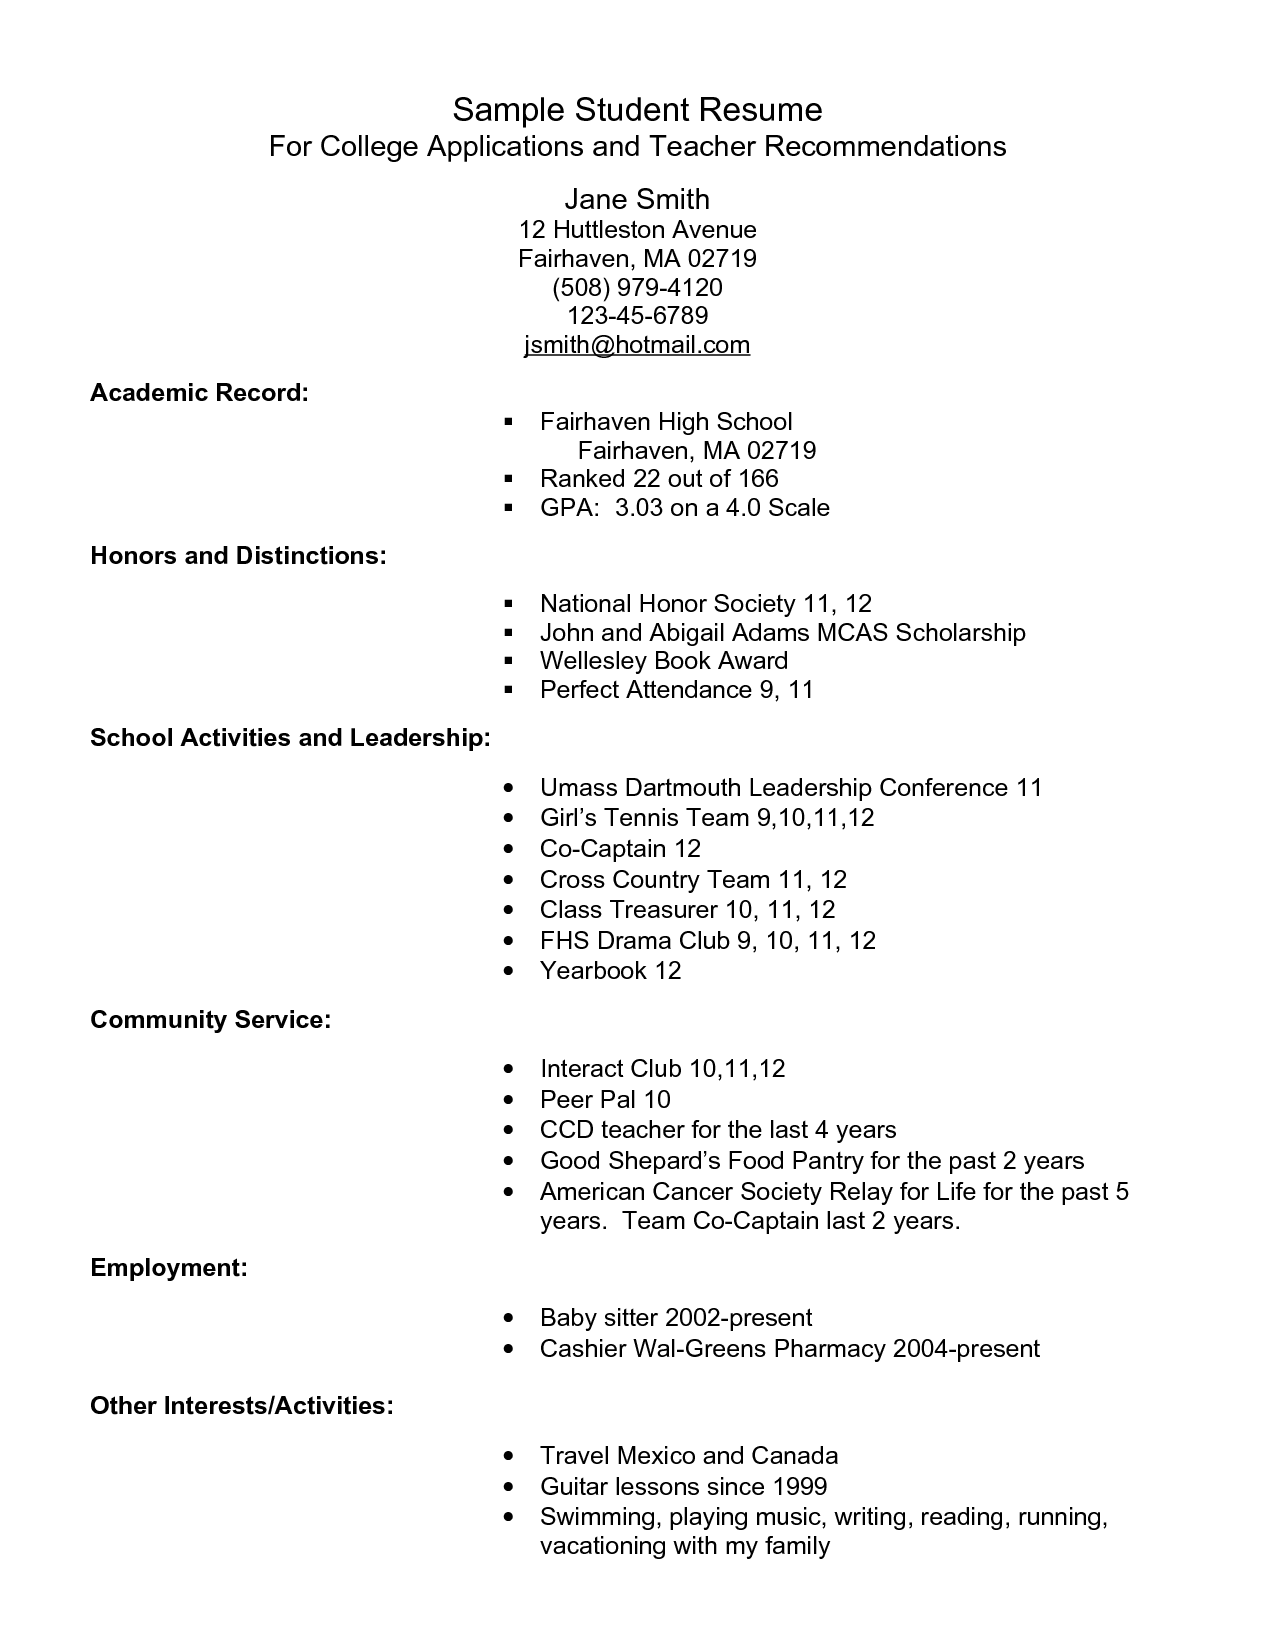 Amazing Example Resume For High School Students For College Applications Sample  Student Resume   PDF By Smapdi59  College Application Resume Sample